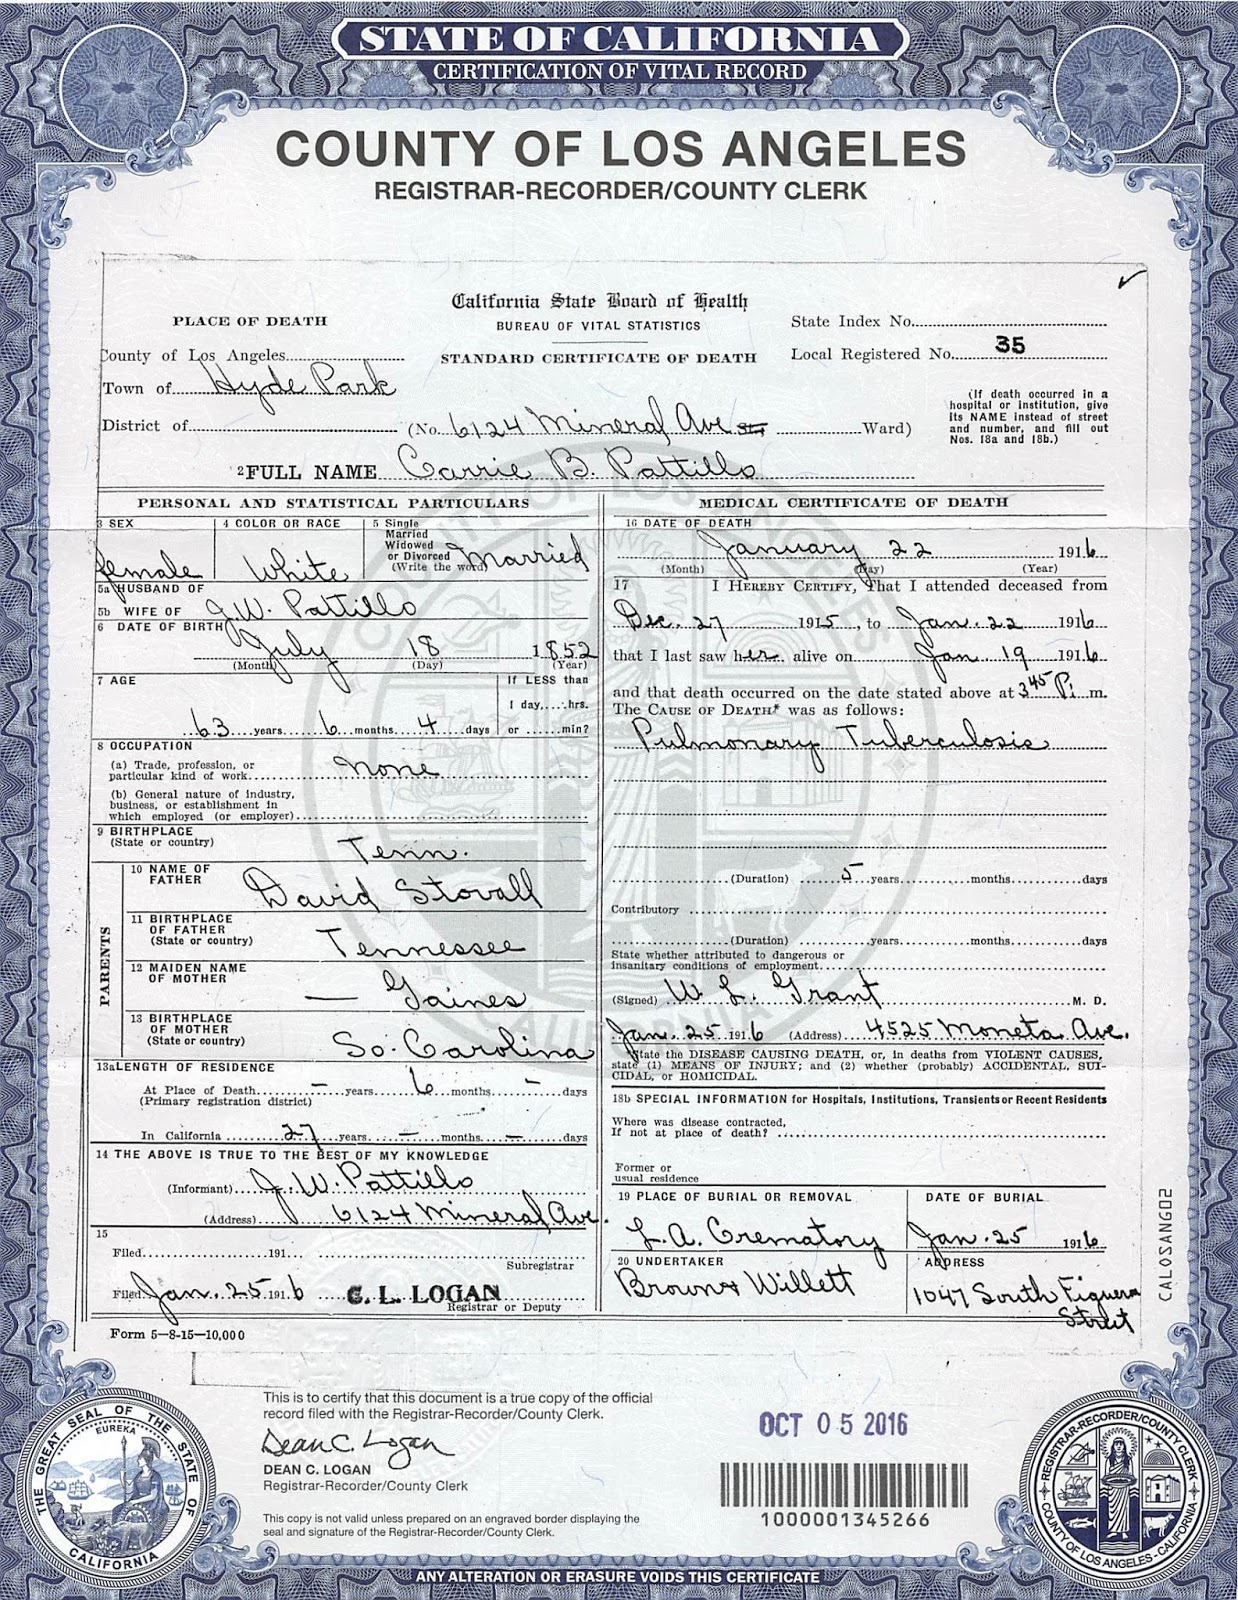 Pattillo thornally ancestors carries death certificate i obtained in los angeles in 2016 1betcityfo Gallery